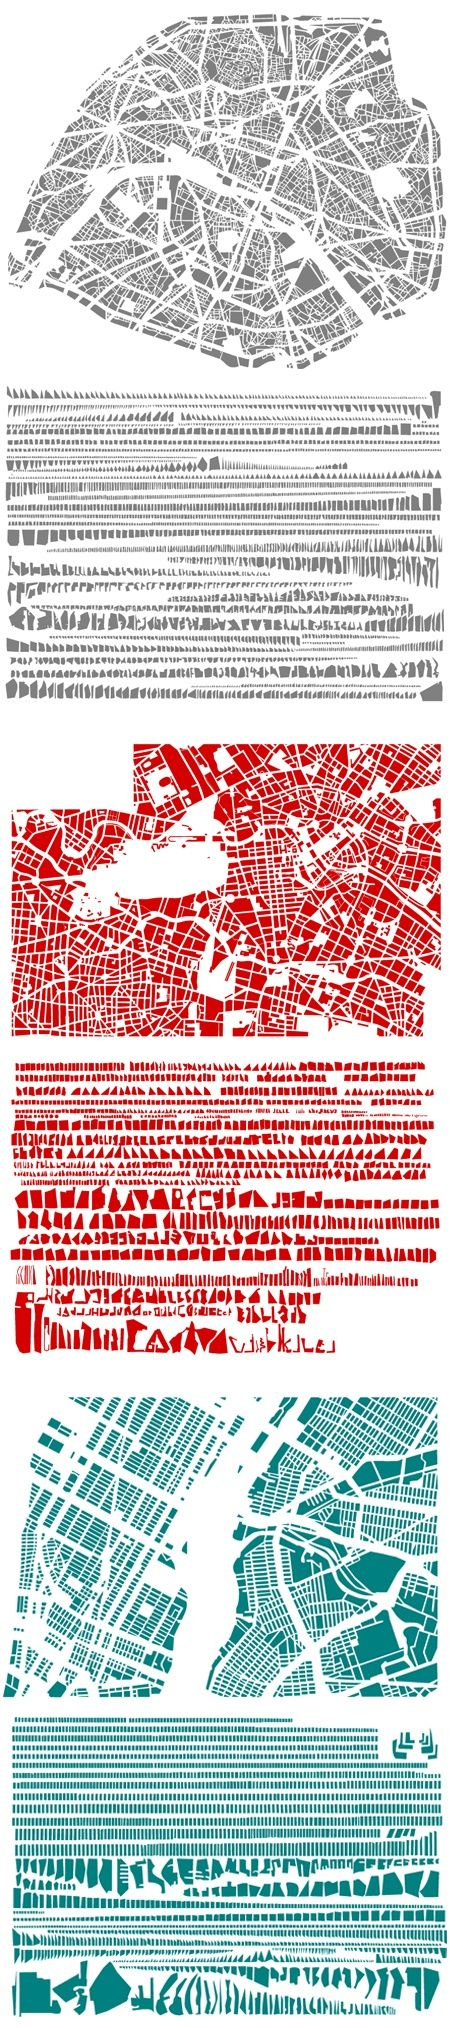 The best as art structures images on pinterest cartography